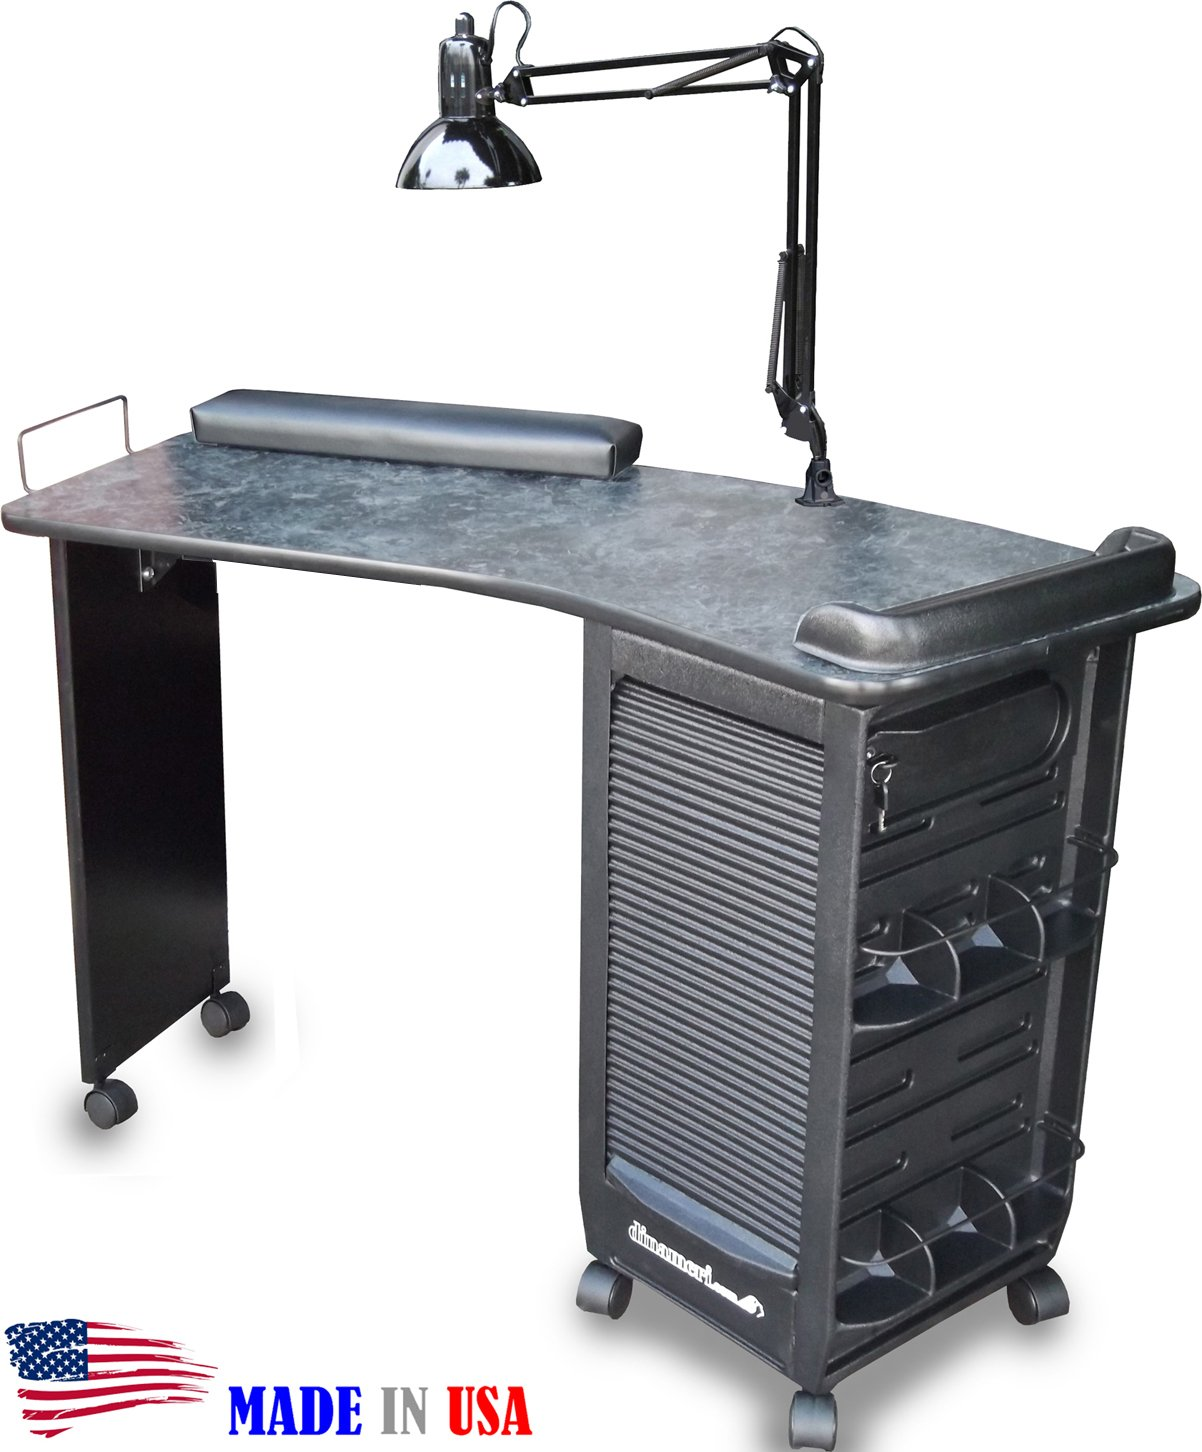 390 Manicure Nail Table Lockable Cabinet w/Black Marble Laminated Top by Dina Meri